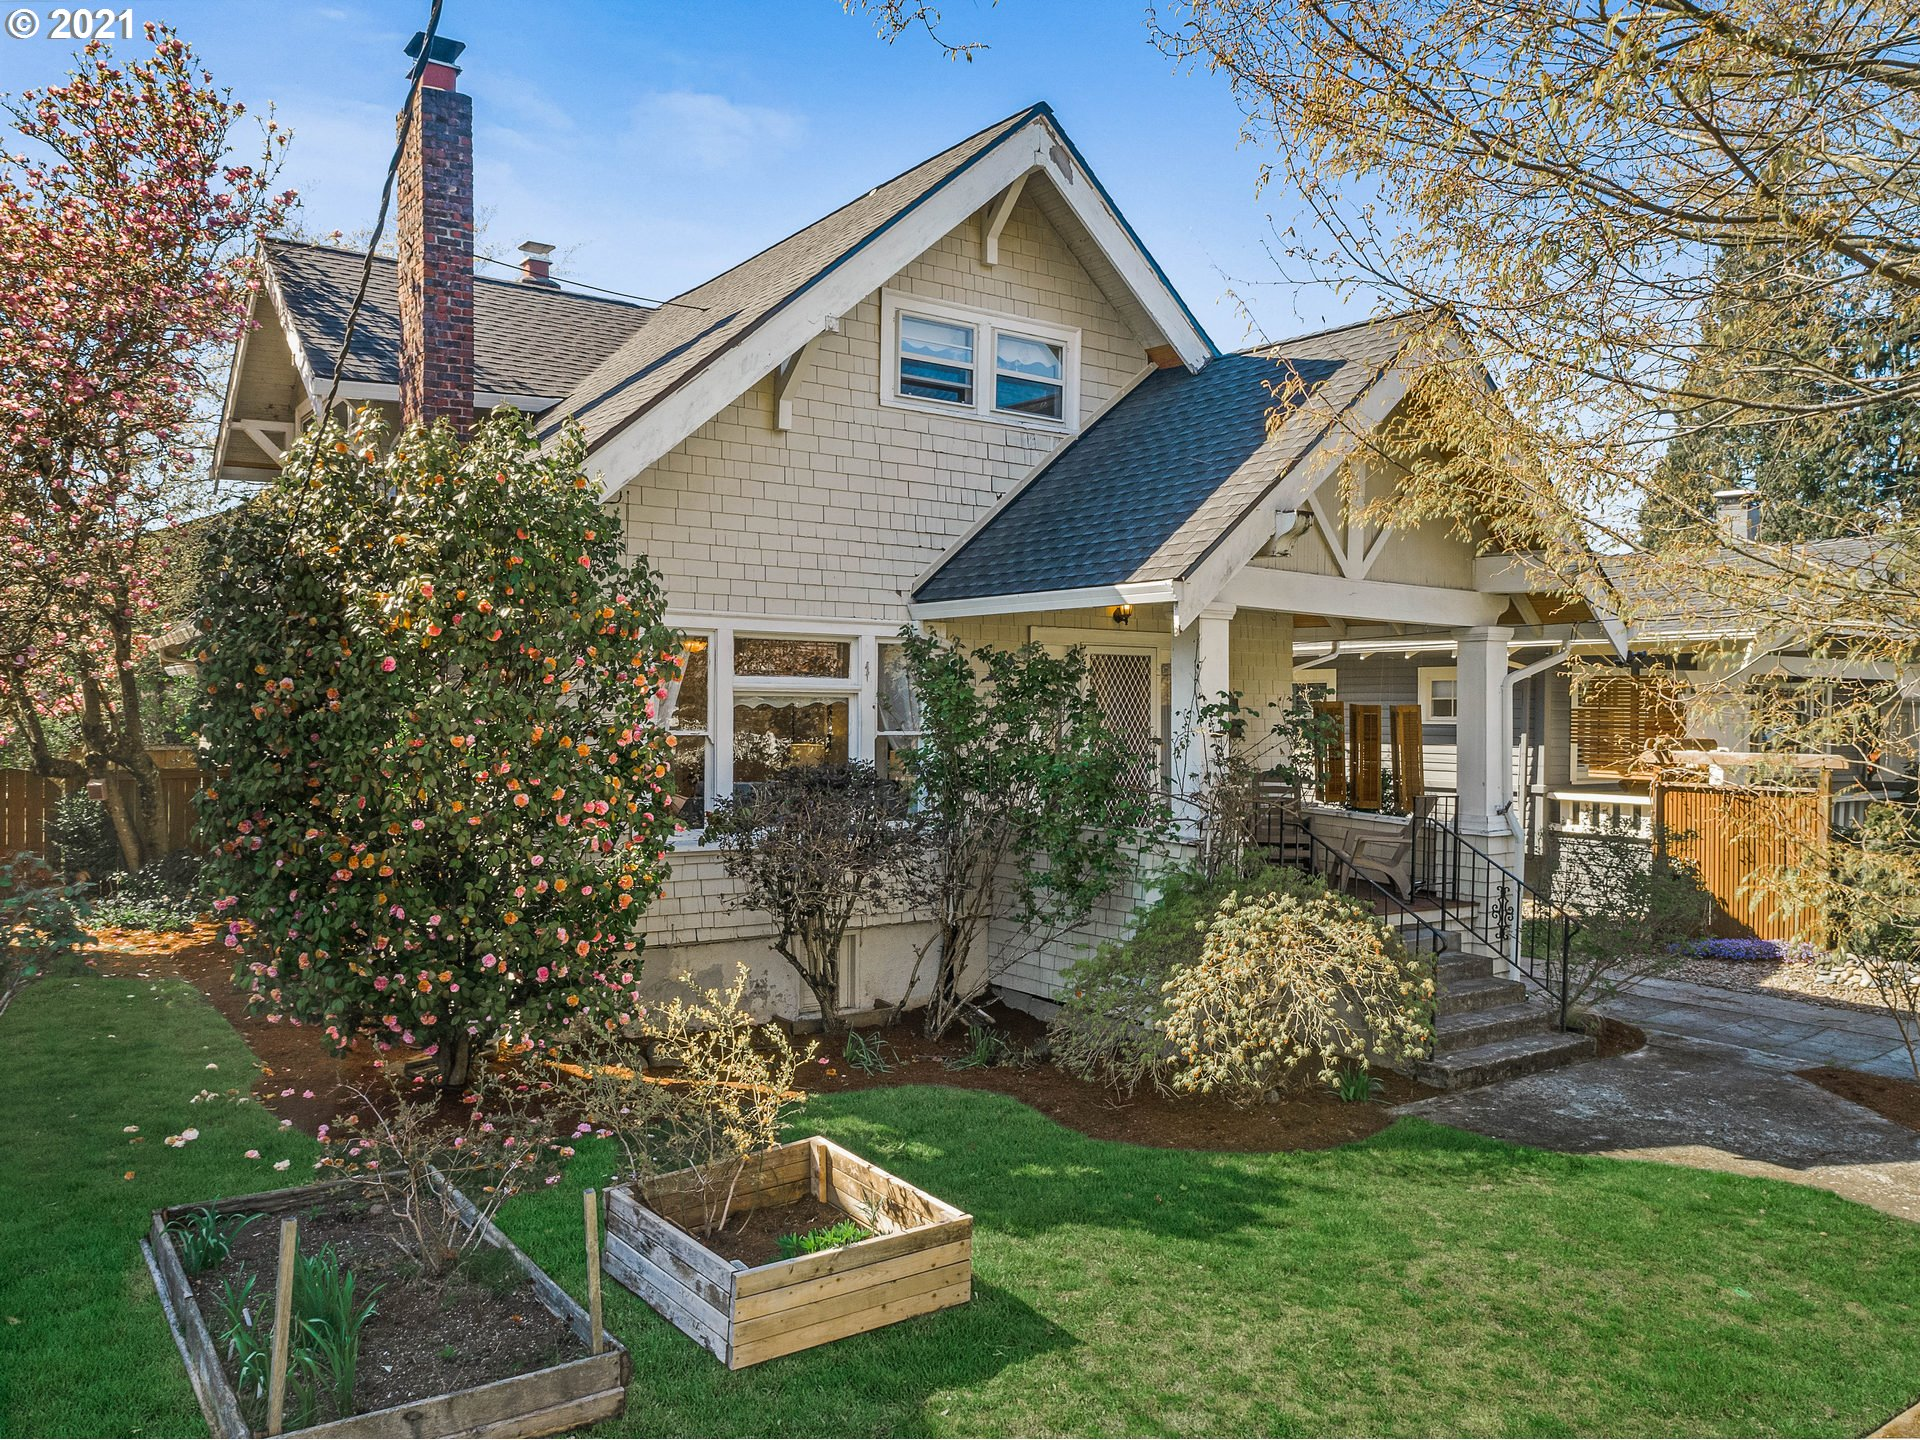 Charming Craftsman Style Home in the heart of Beaumont!!  Enjoy your morning coffee on the front porch. Four bedrooms, 3 full bathrooms, leaded glass, hardwood floors, built-ins, Fireplace with clinker bricks, oversized single detached garage with off-street parking, Beaumont Village blocks away. Walk and bikers paradise.  Walk score of 79 and bike score 99.